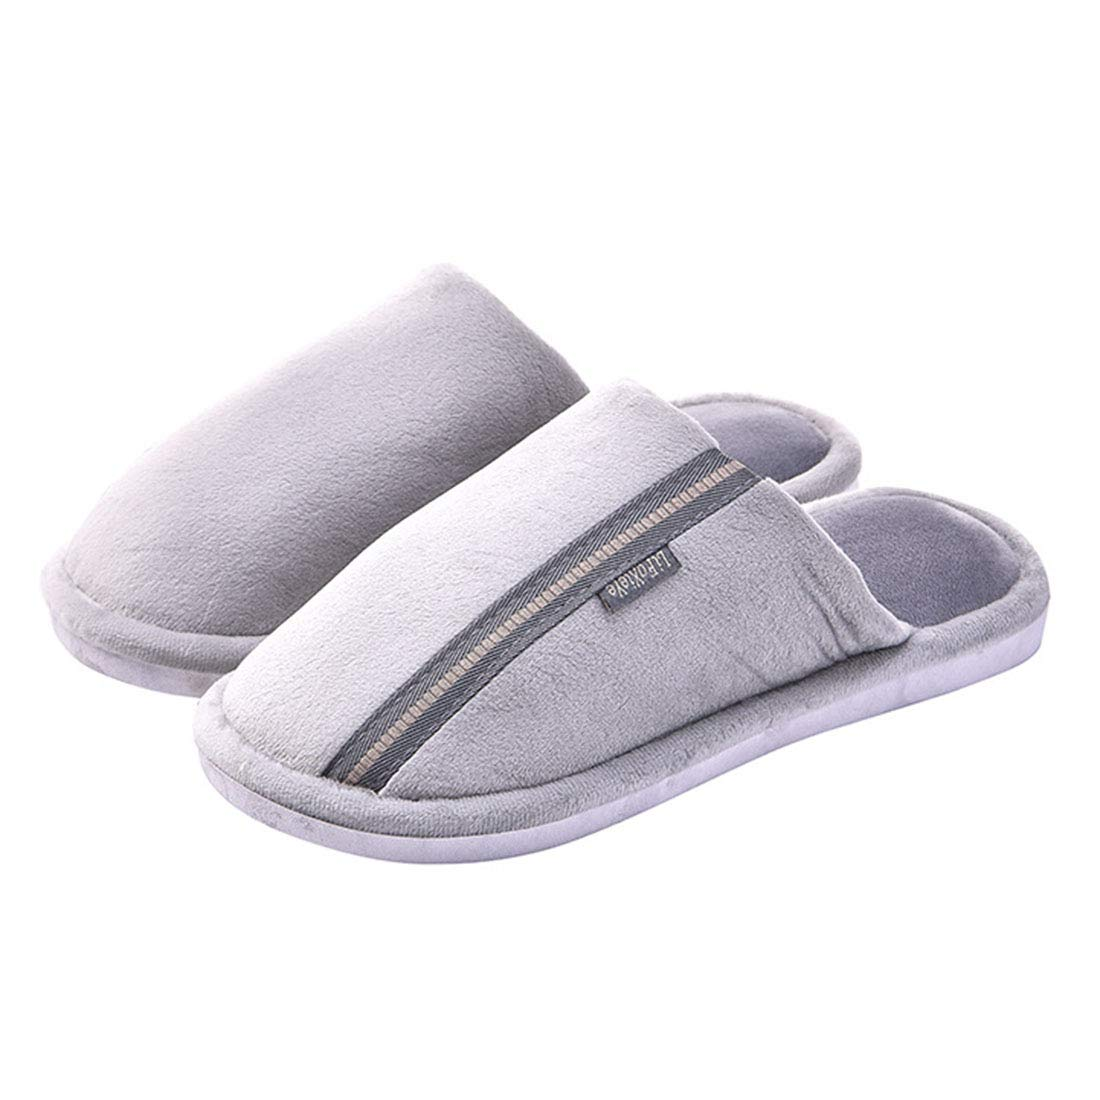 Memory Foam House Slippers Close Toe Slippers Anti-Slip Sole for Home